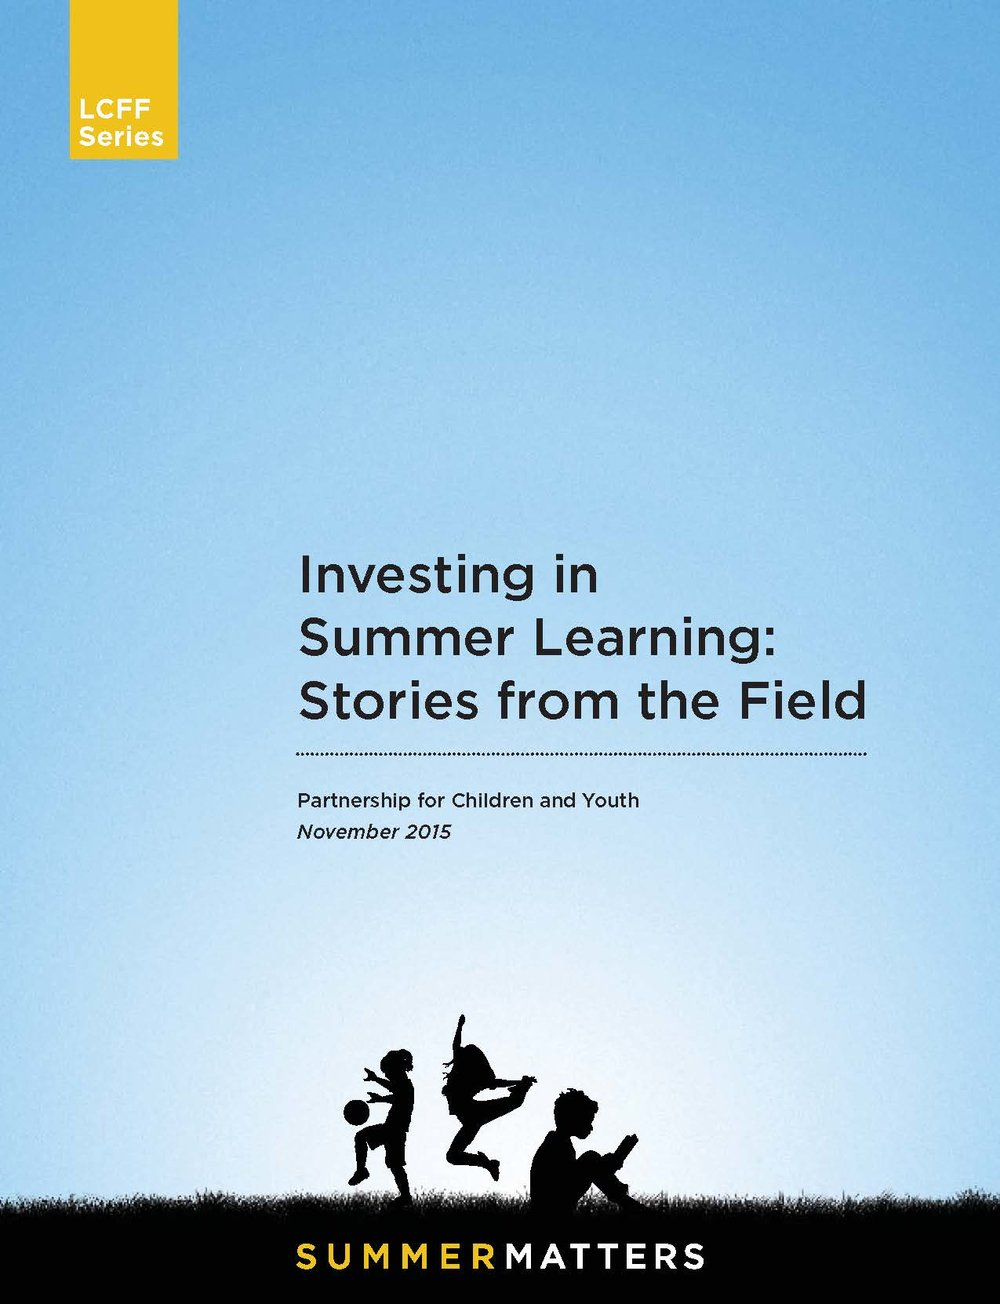 Front Page Image_Summer Matters FieldStories.jpg